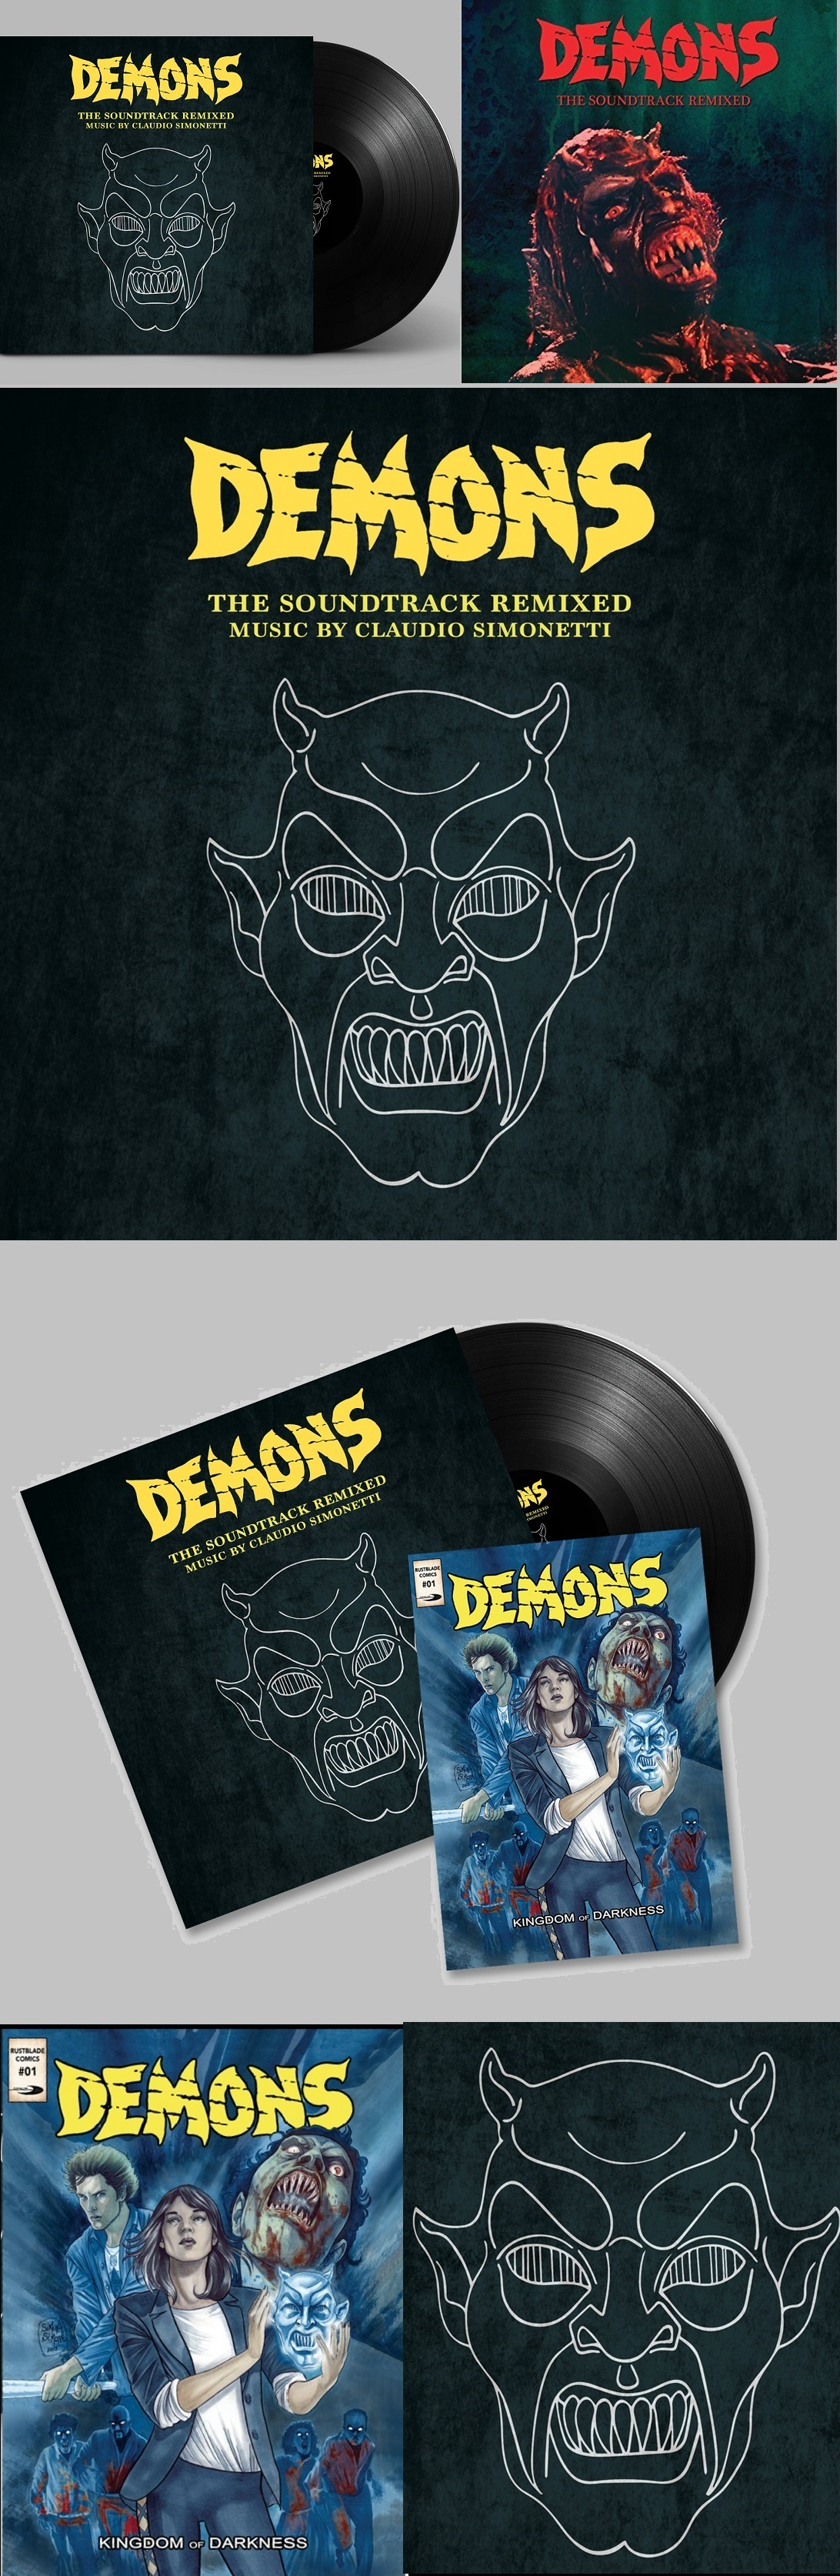 Demons: The Soundtrack Remixed